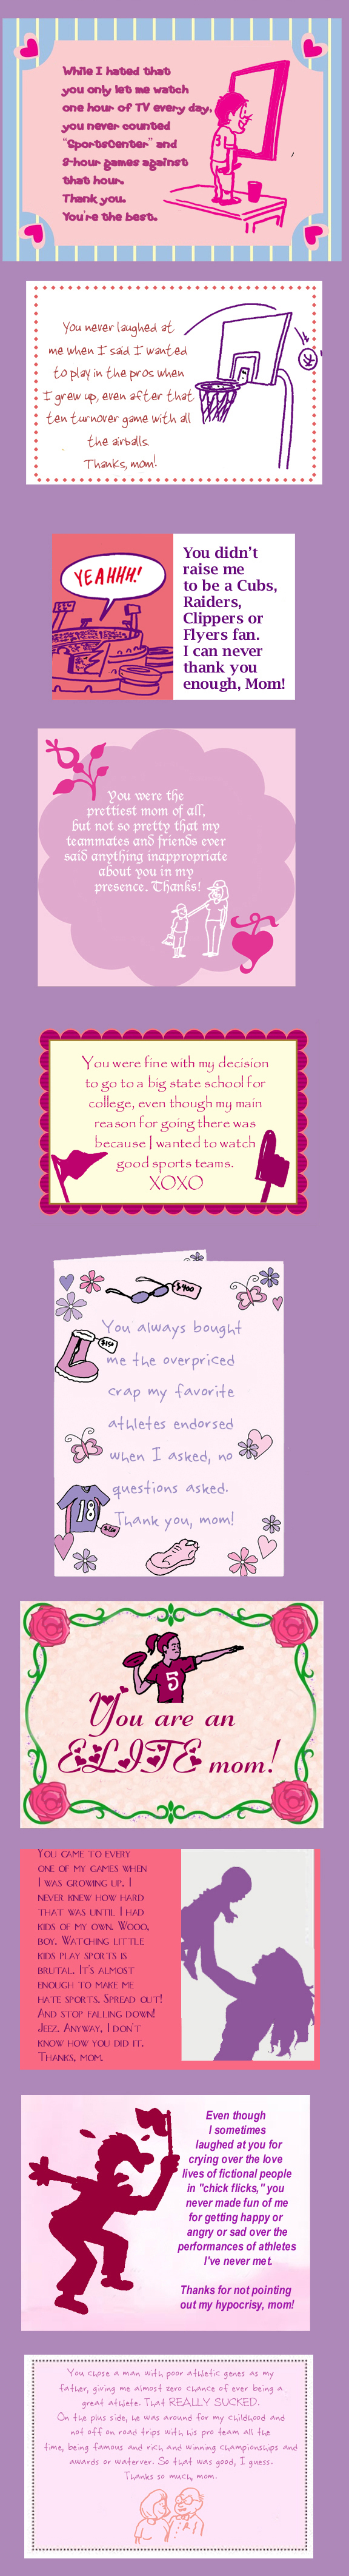 Playbook Mother's Day sports-themed cards